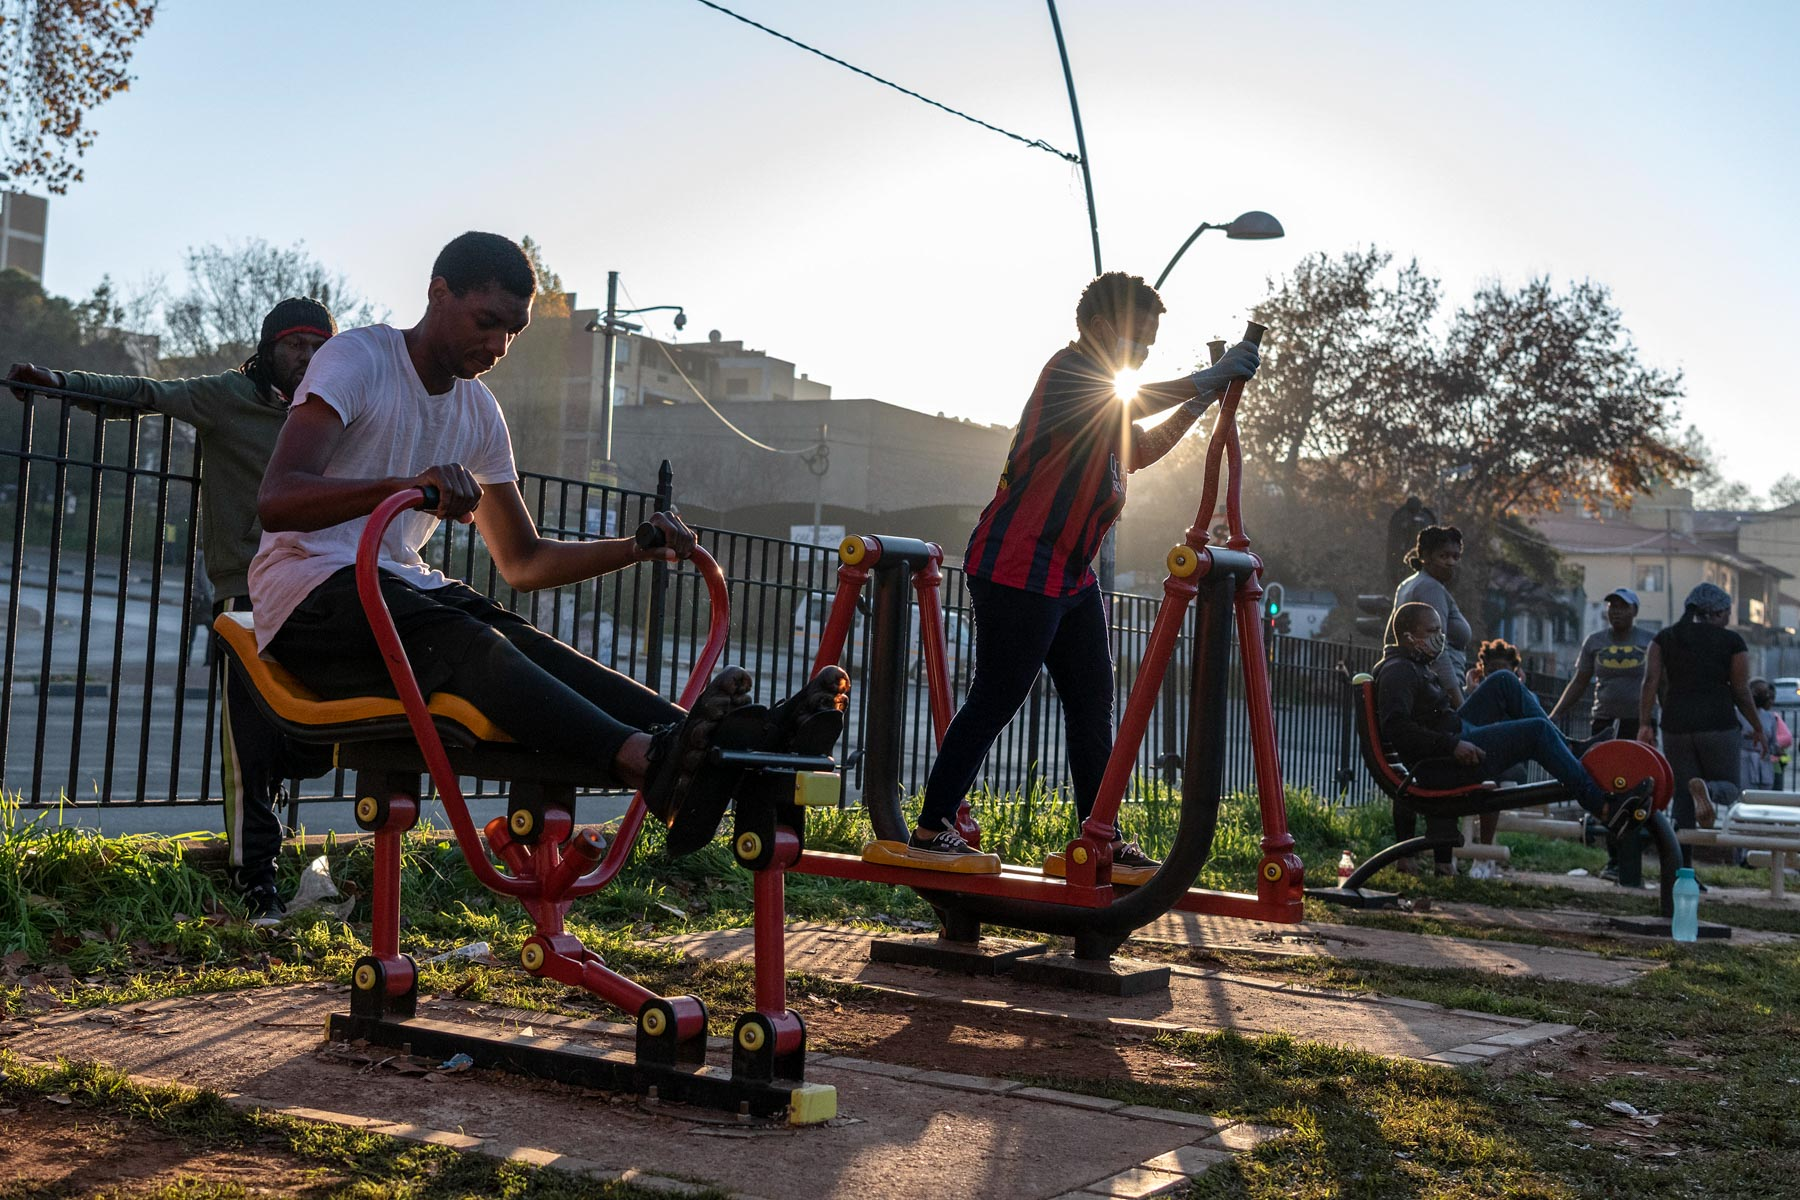 12 May 2020: Residents otherwise stuck inside small flats in the inner city of Johannesburg make use of the outdoor gym facilities during the morning exercise window.